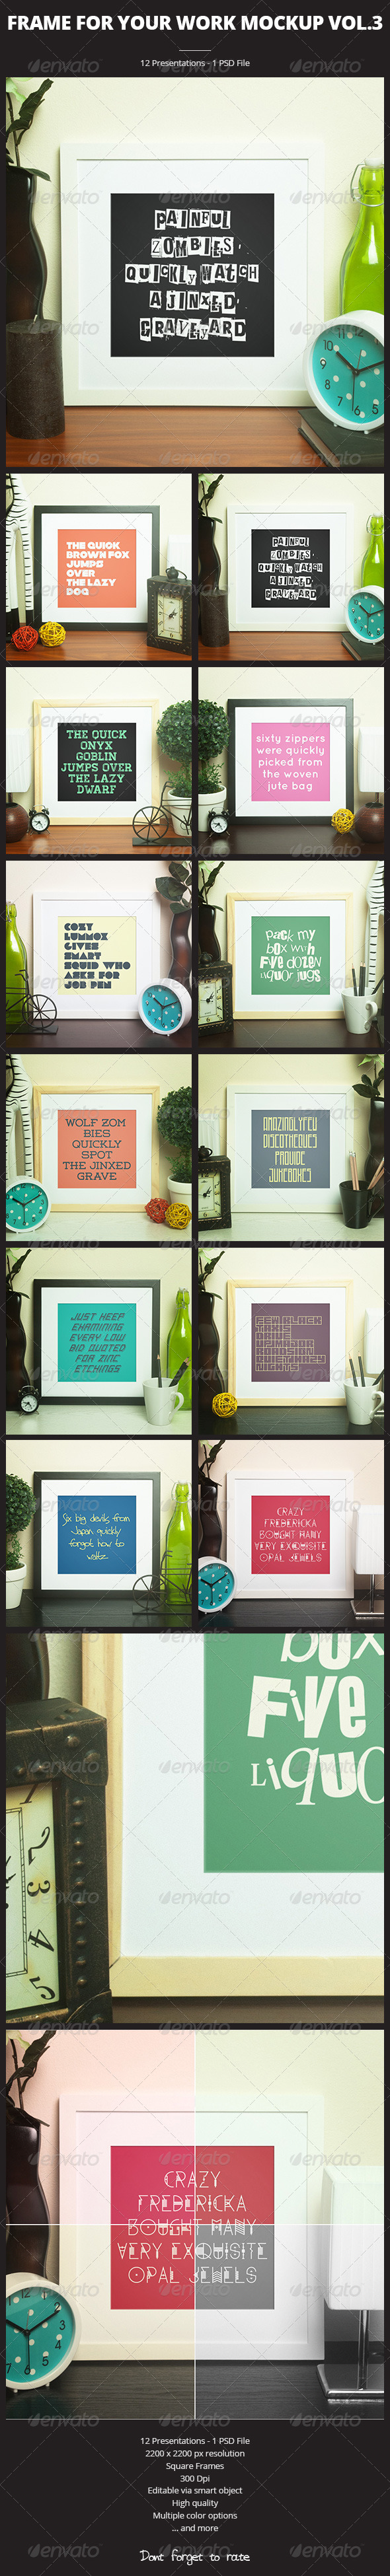 Frame For Your Work vol.3 - Print Product Mock-Ups